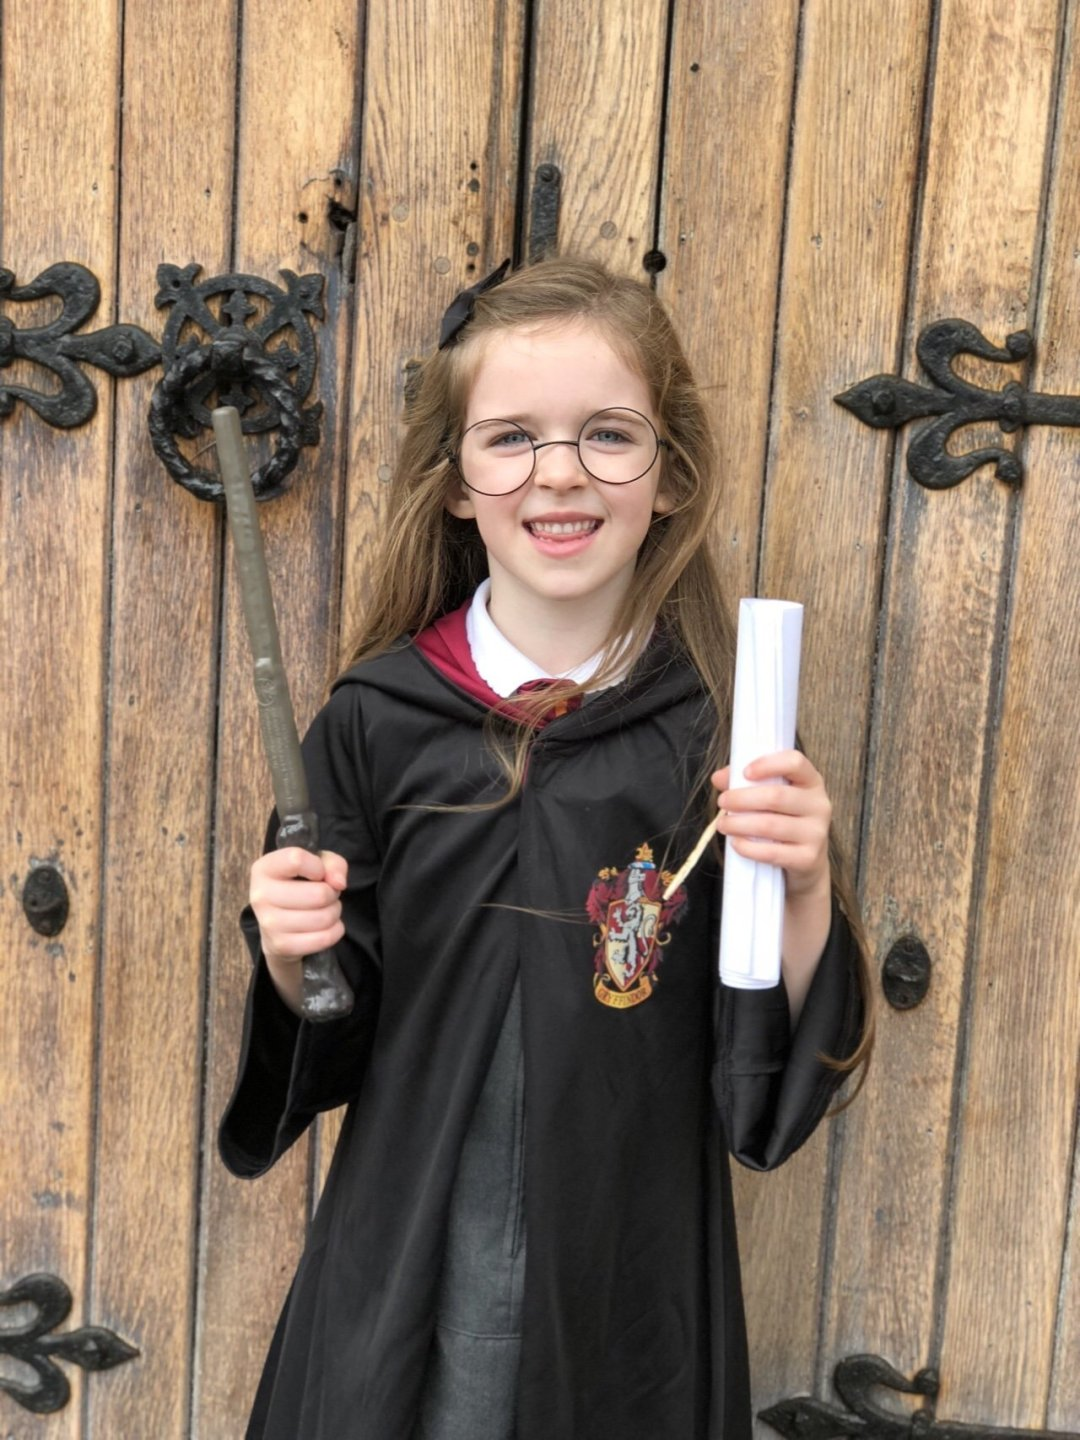 Child dressed as Harry Potter holding a wand